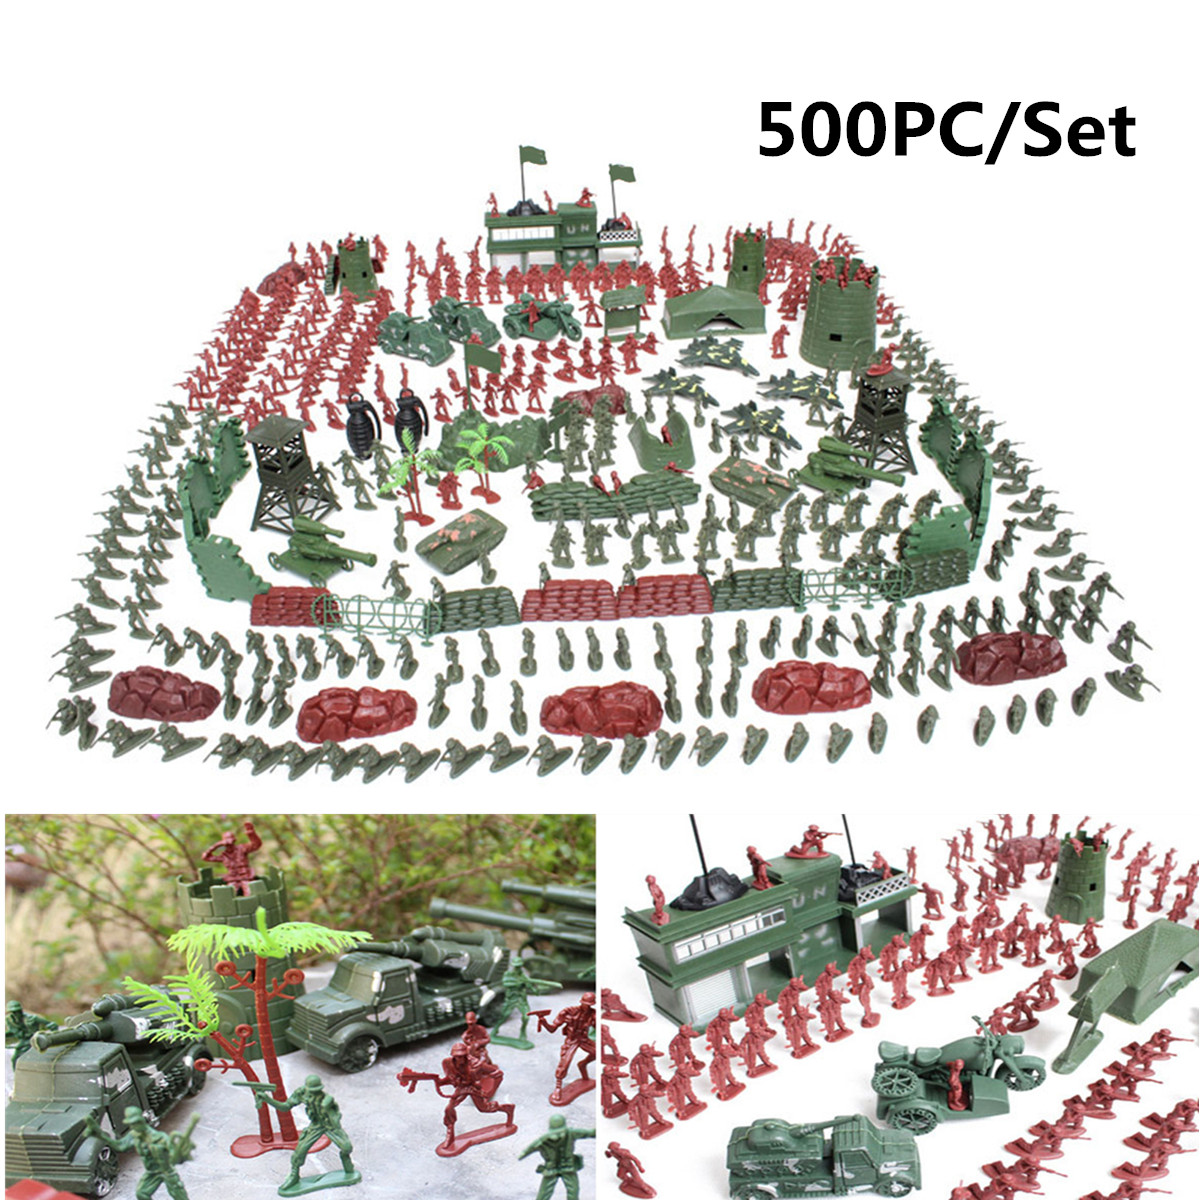 500Pcs/set Military Plastic Soldier Model Toy Army Men Figures Playset Toys Decor Gift For Children Kids Boys 2-4cm 170pcs set military plastic model toy soldier army men figures